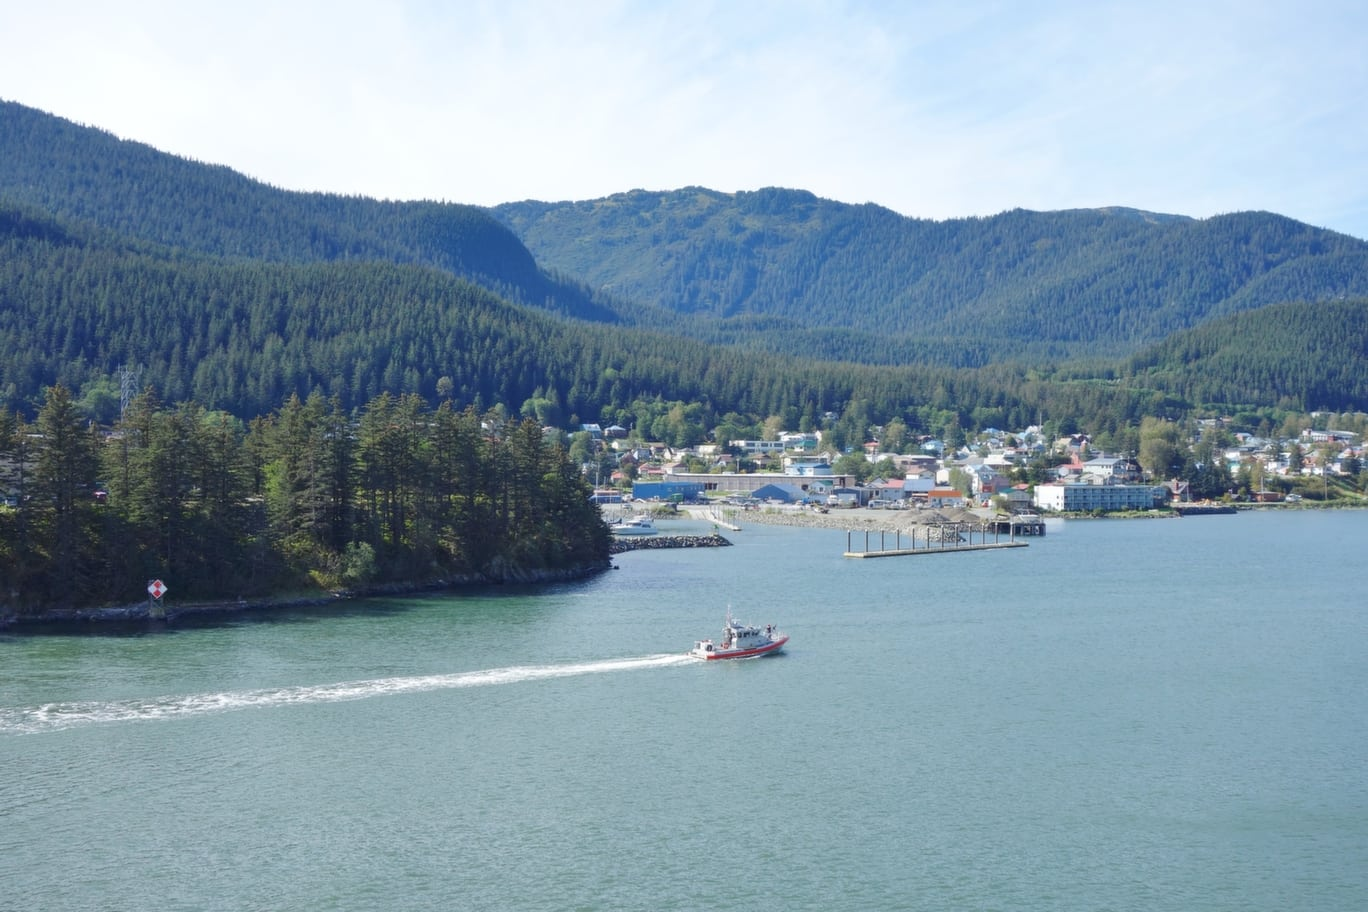 Celebrity Solstice Cruise to Alaska